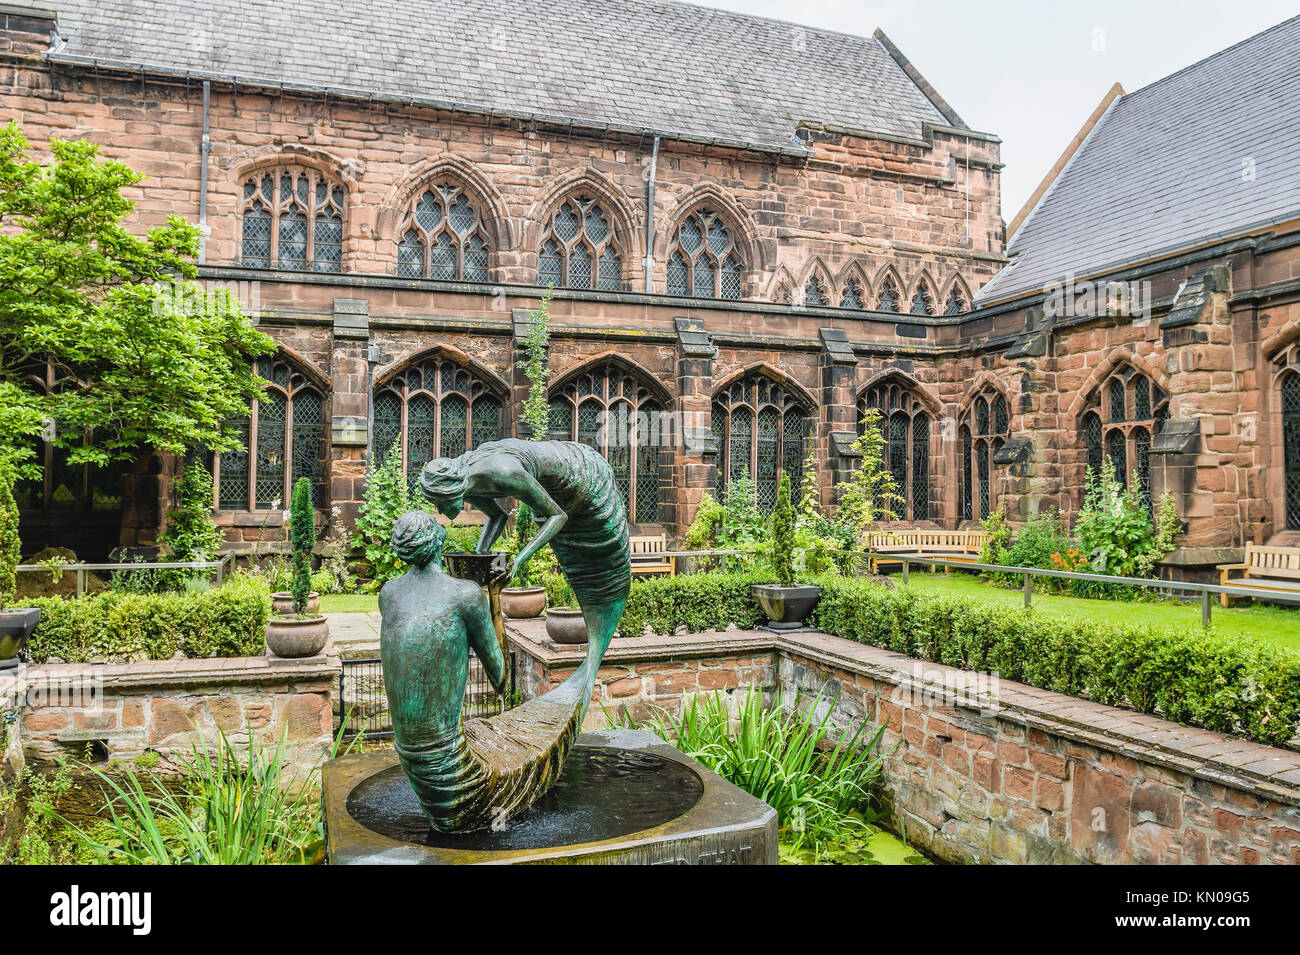 Sculptures at the Garden of Rememberance at in the cloister garth of Chester Cathedral, Cheshire, North West England. Stock Photo